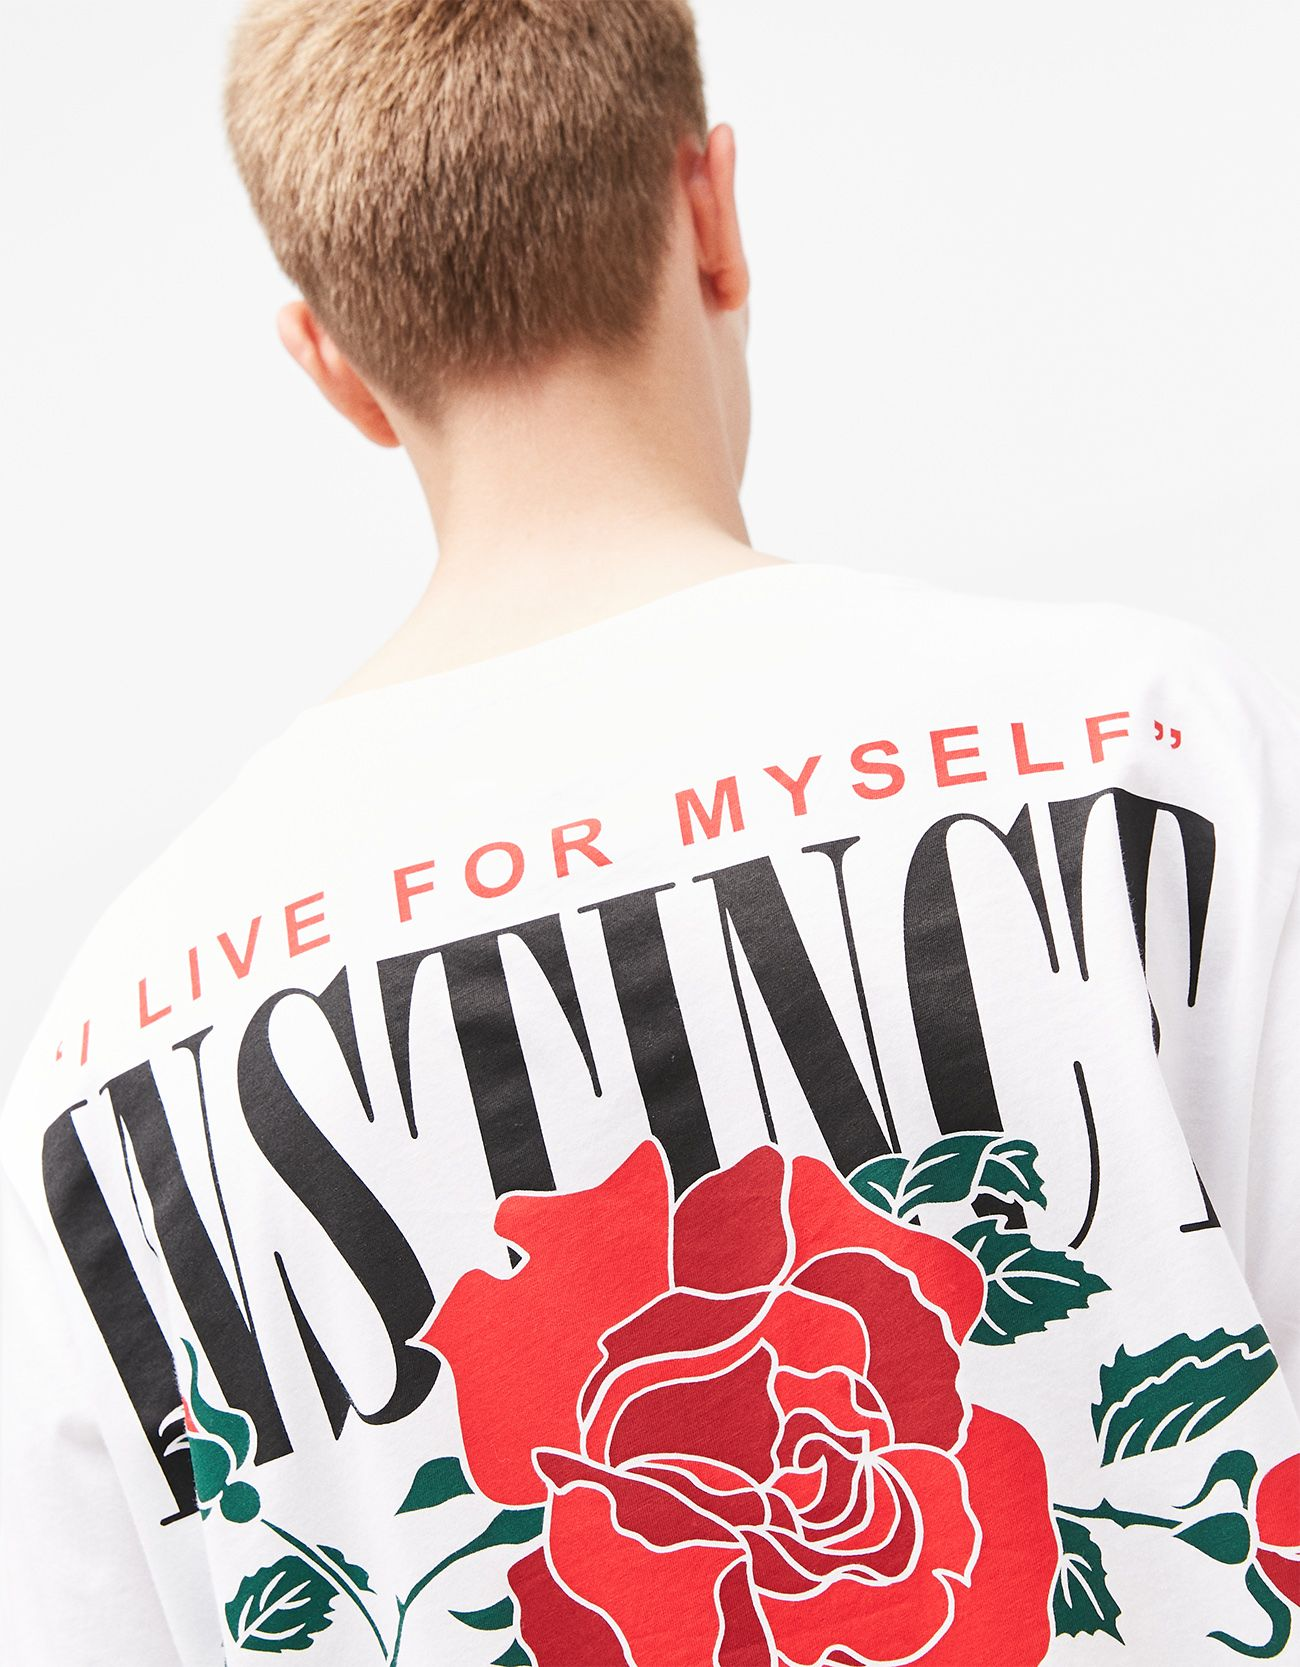 T shirt printing at white rose - T Shirt With Skull Rose Print On Back Discover This And Many More